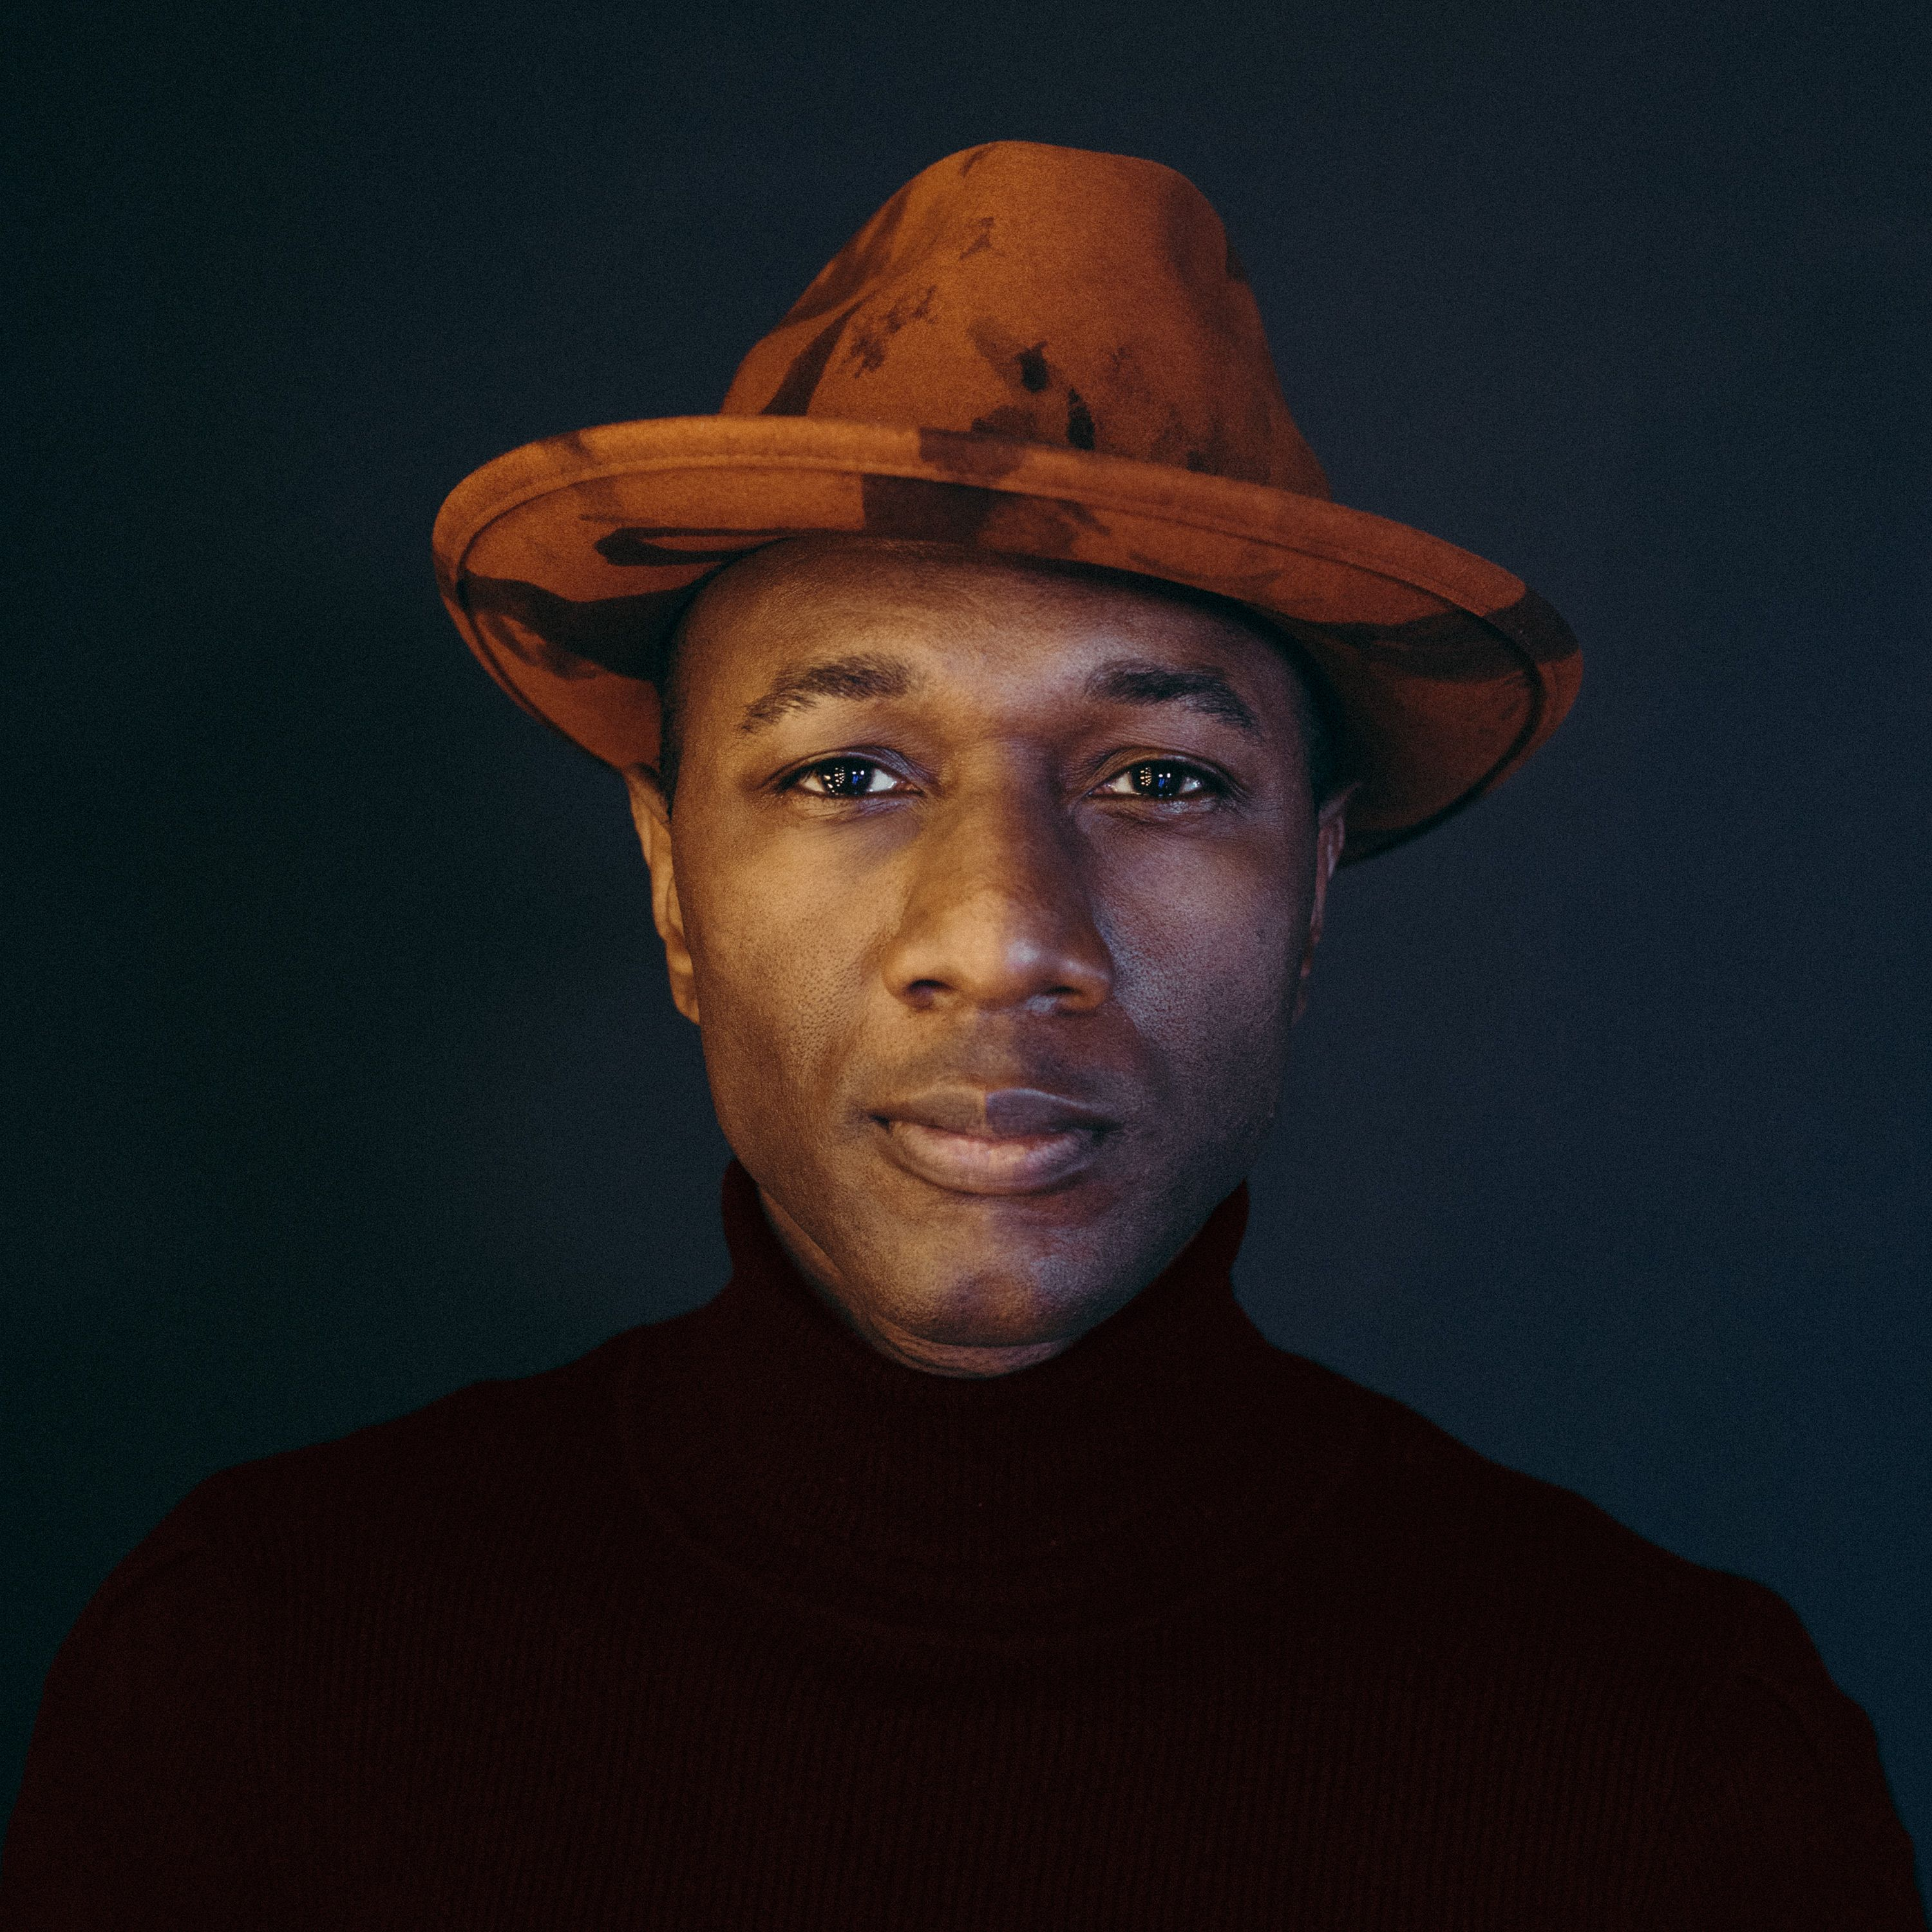 Headshot of Aloe Blacc.